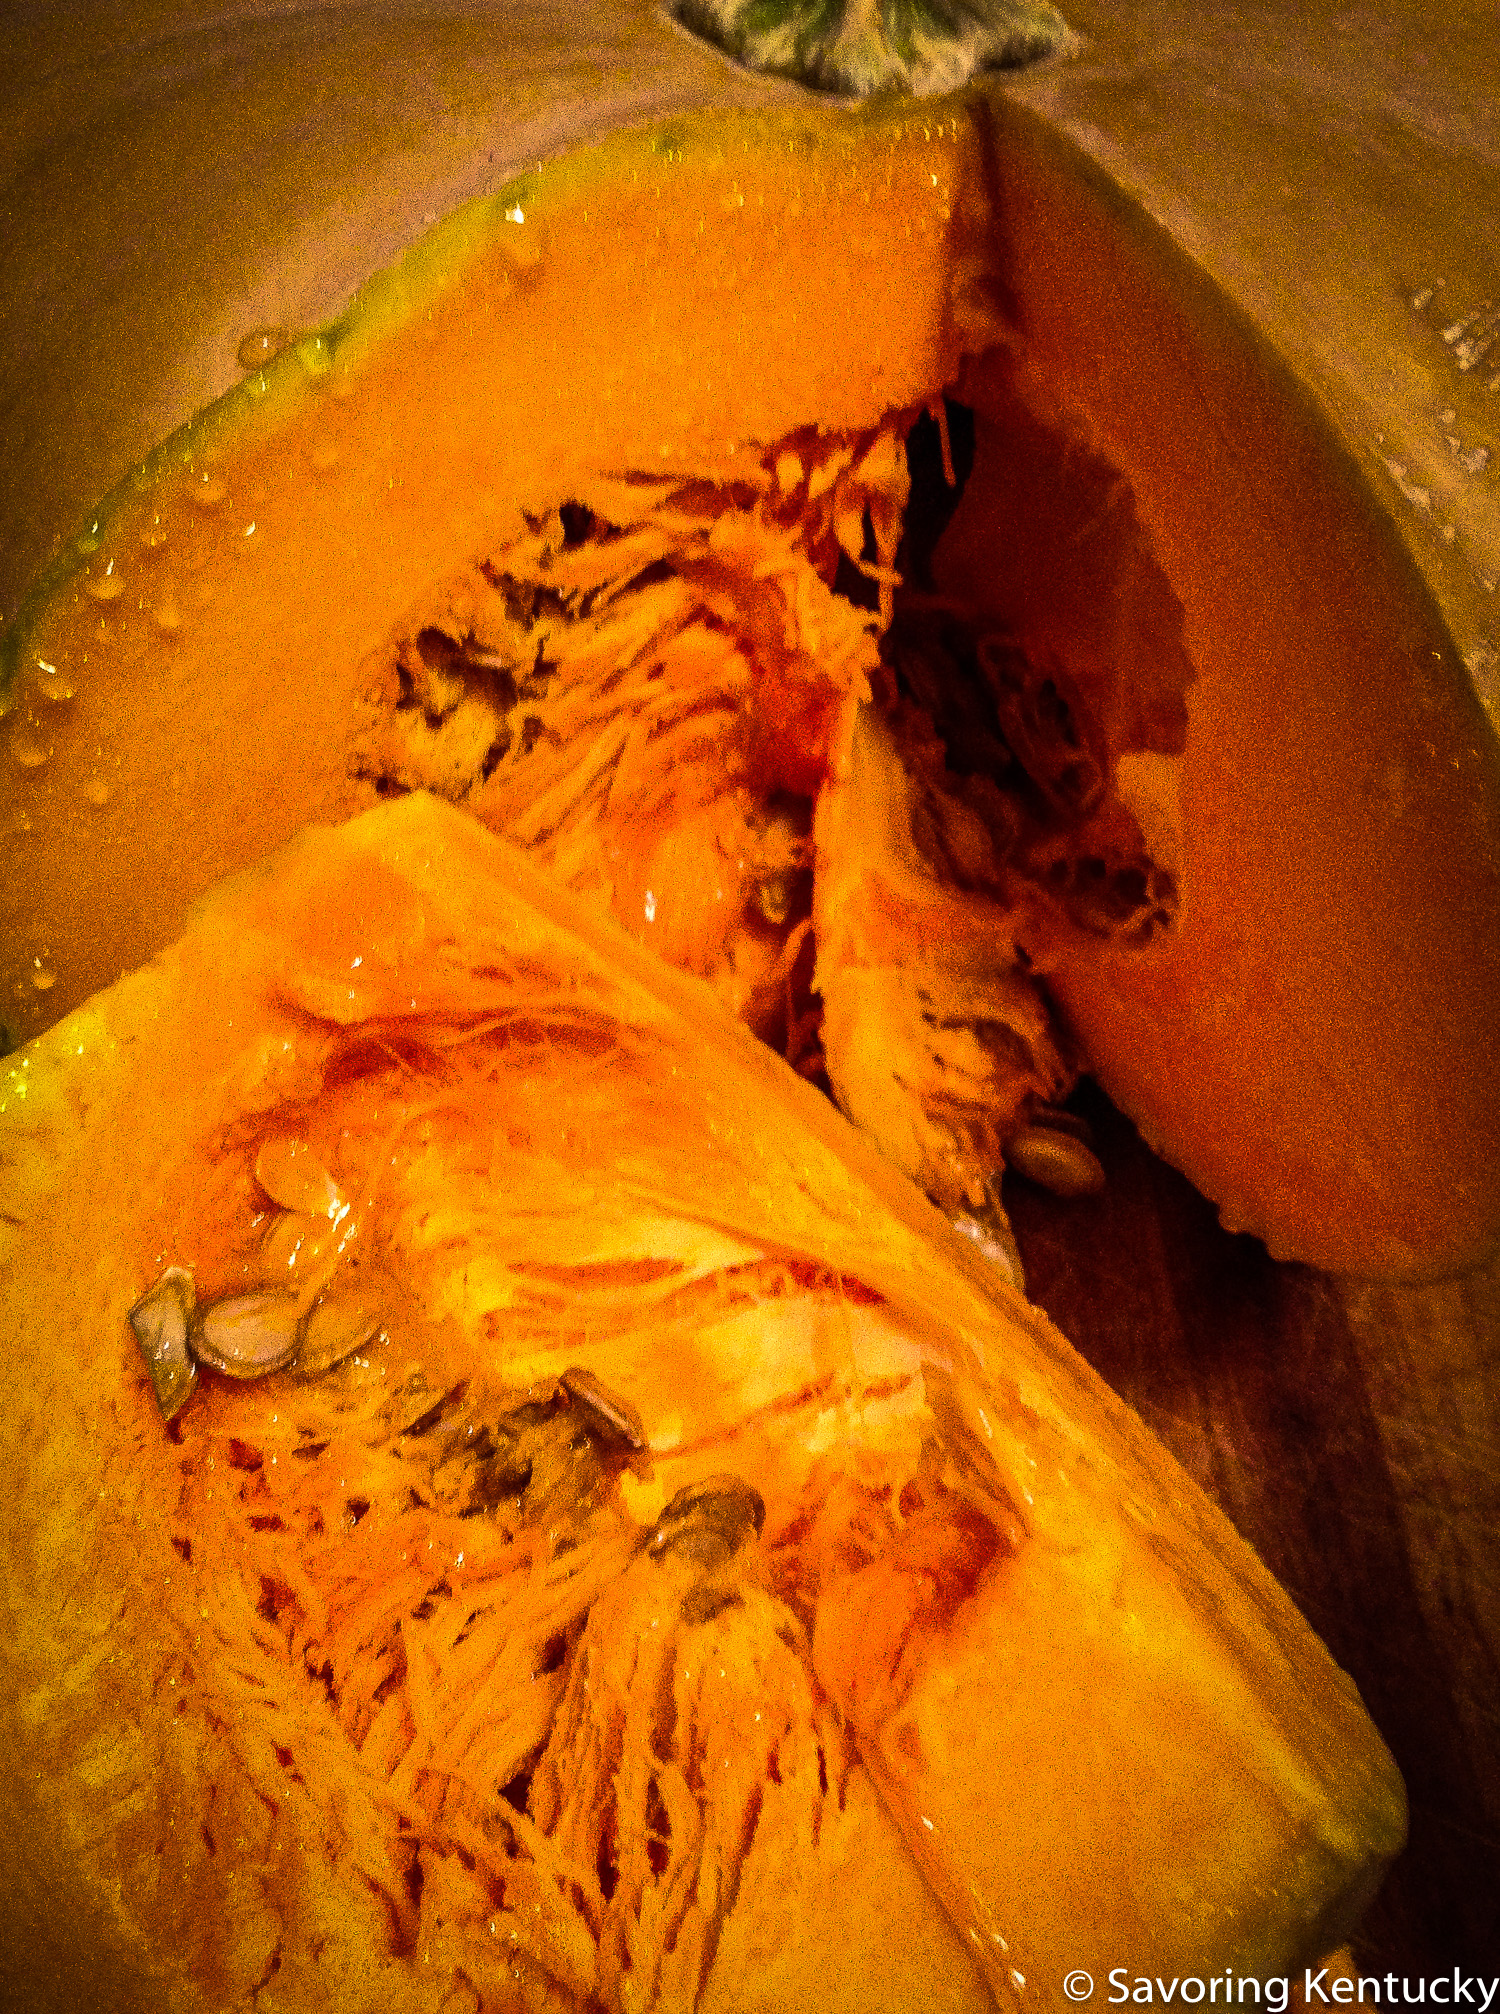 Winter squash, inside and out